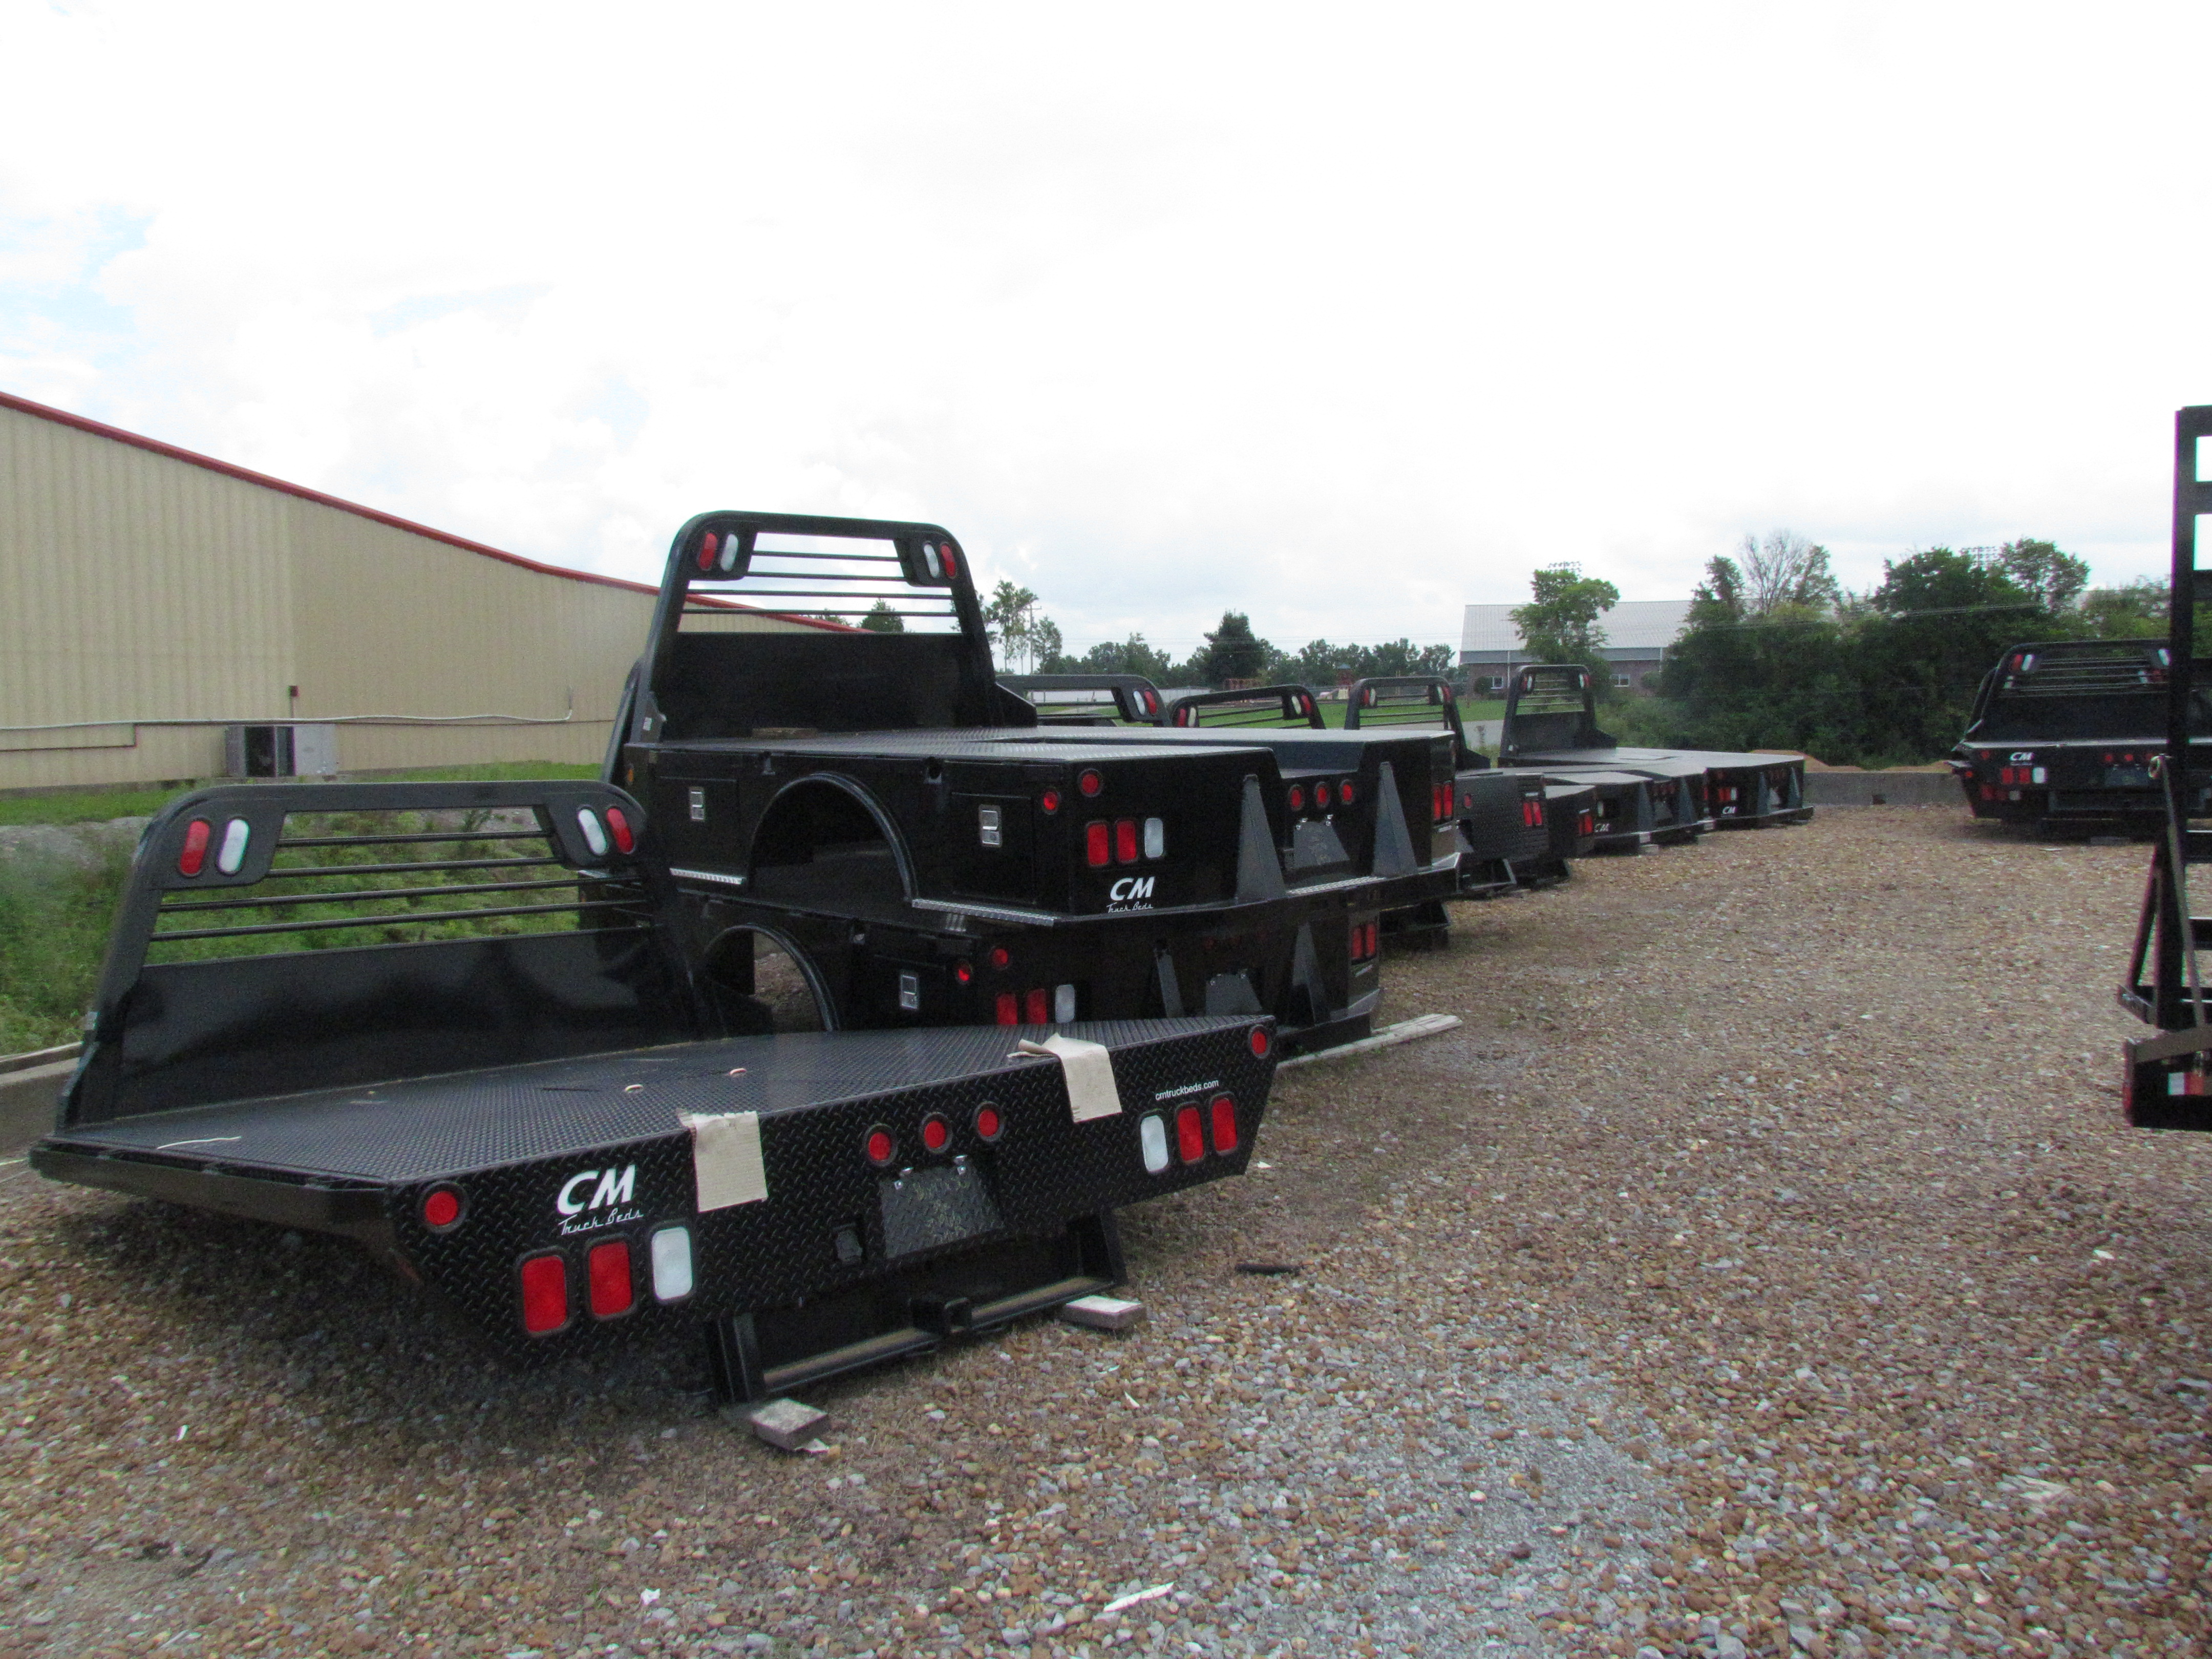 Truck Beds For Sale >> Truck Beds Flatbed And Dump Trailers For Sale At Wholesale Trailer